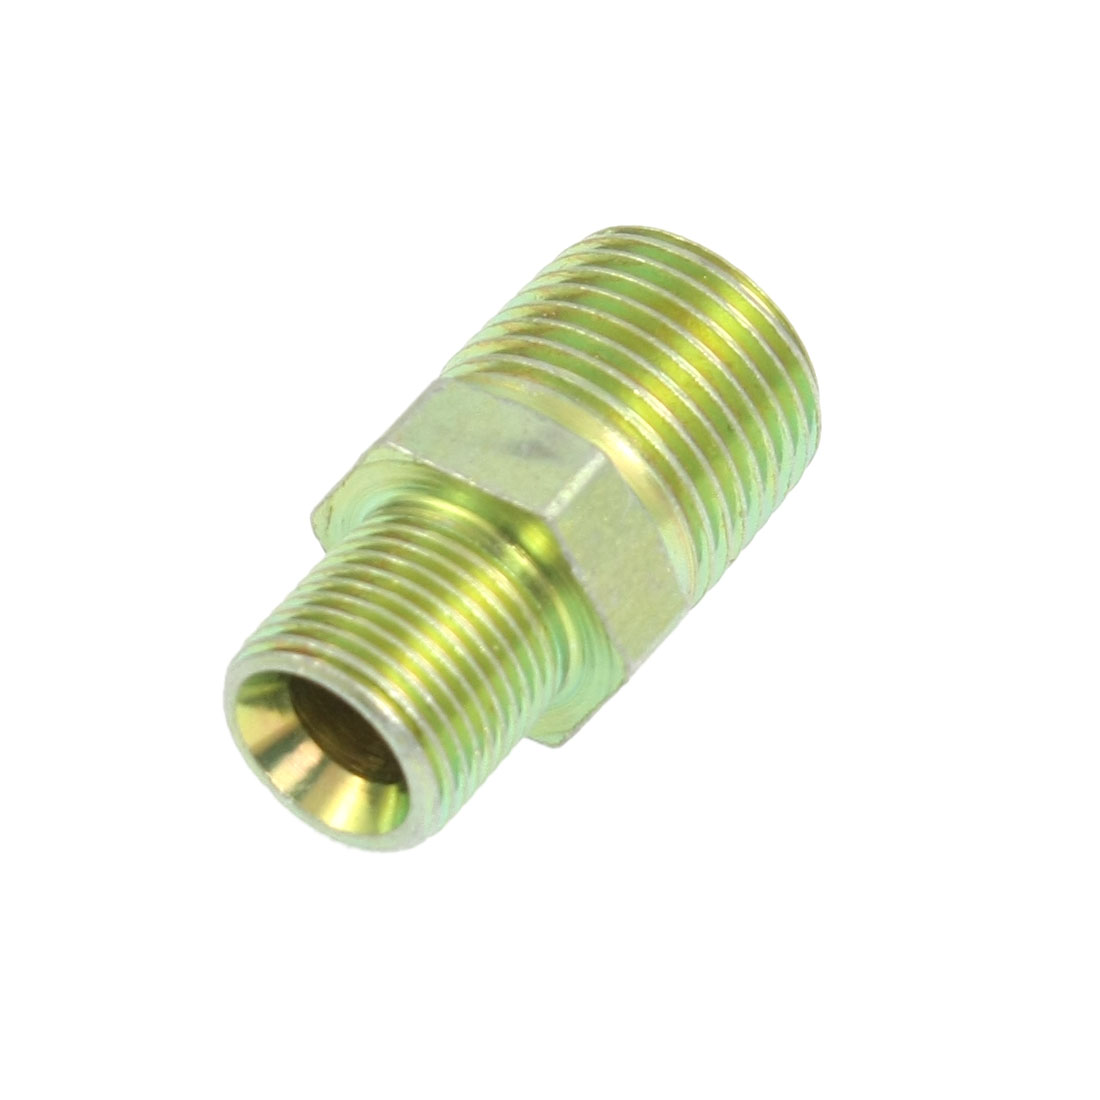 "3/8"" Flare to 1/2"" Male Thread Straight Connector Fuel Line Fitting"